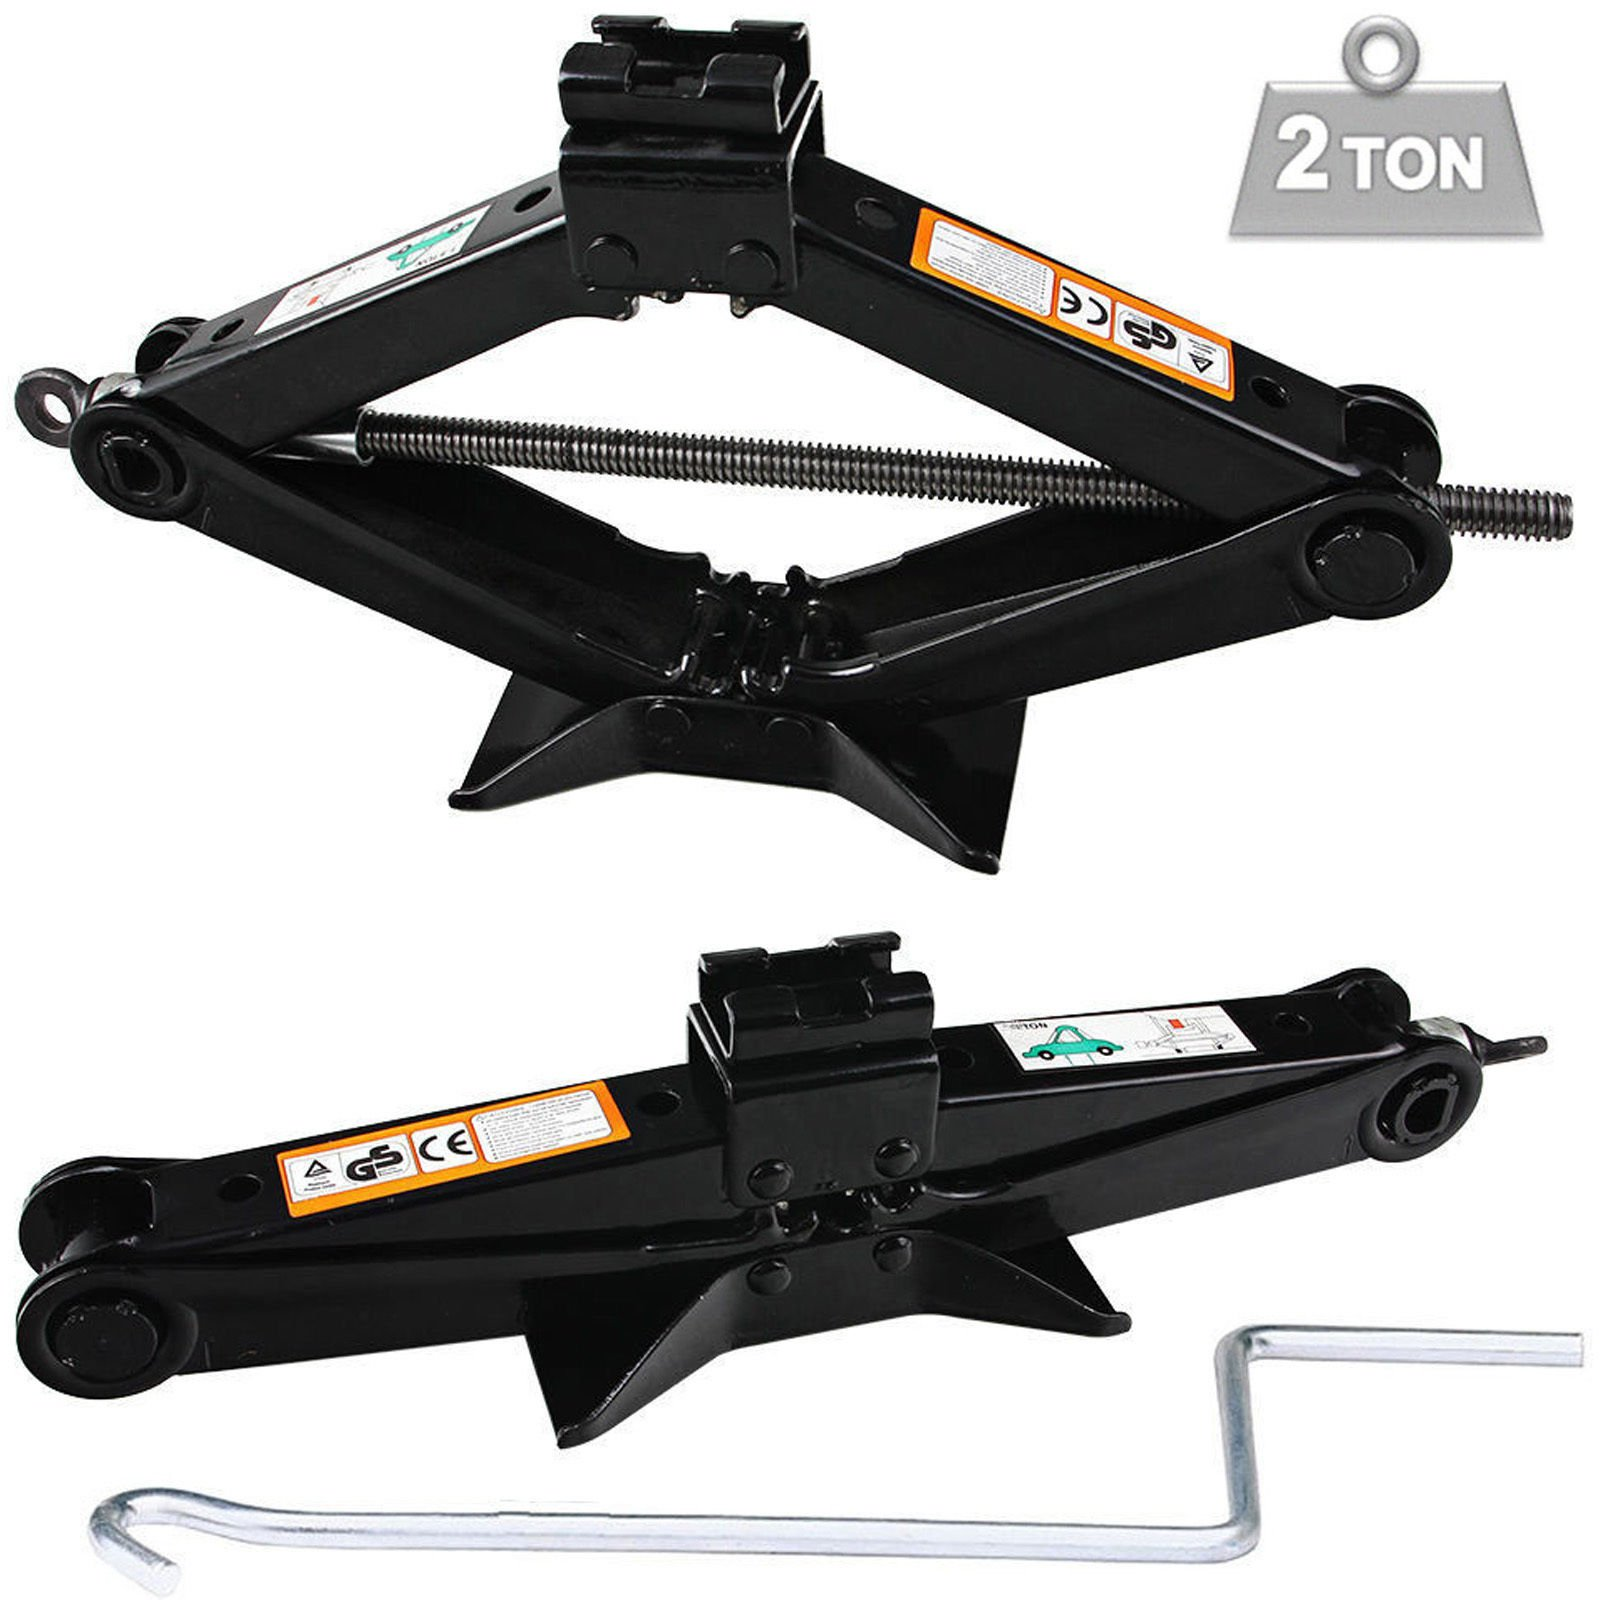 2 Ton Scissor Floor Jack for Car/Travel Trailer/Truck/SUV/UTV With Speed Handle Floor Jack Steel